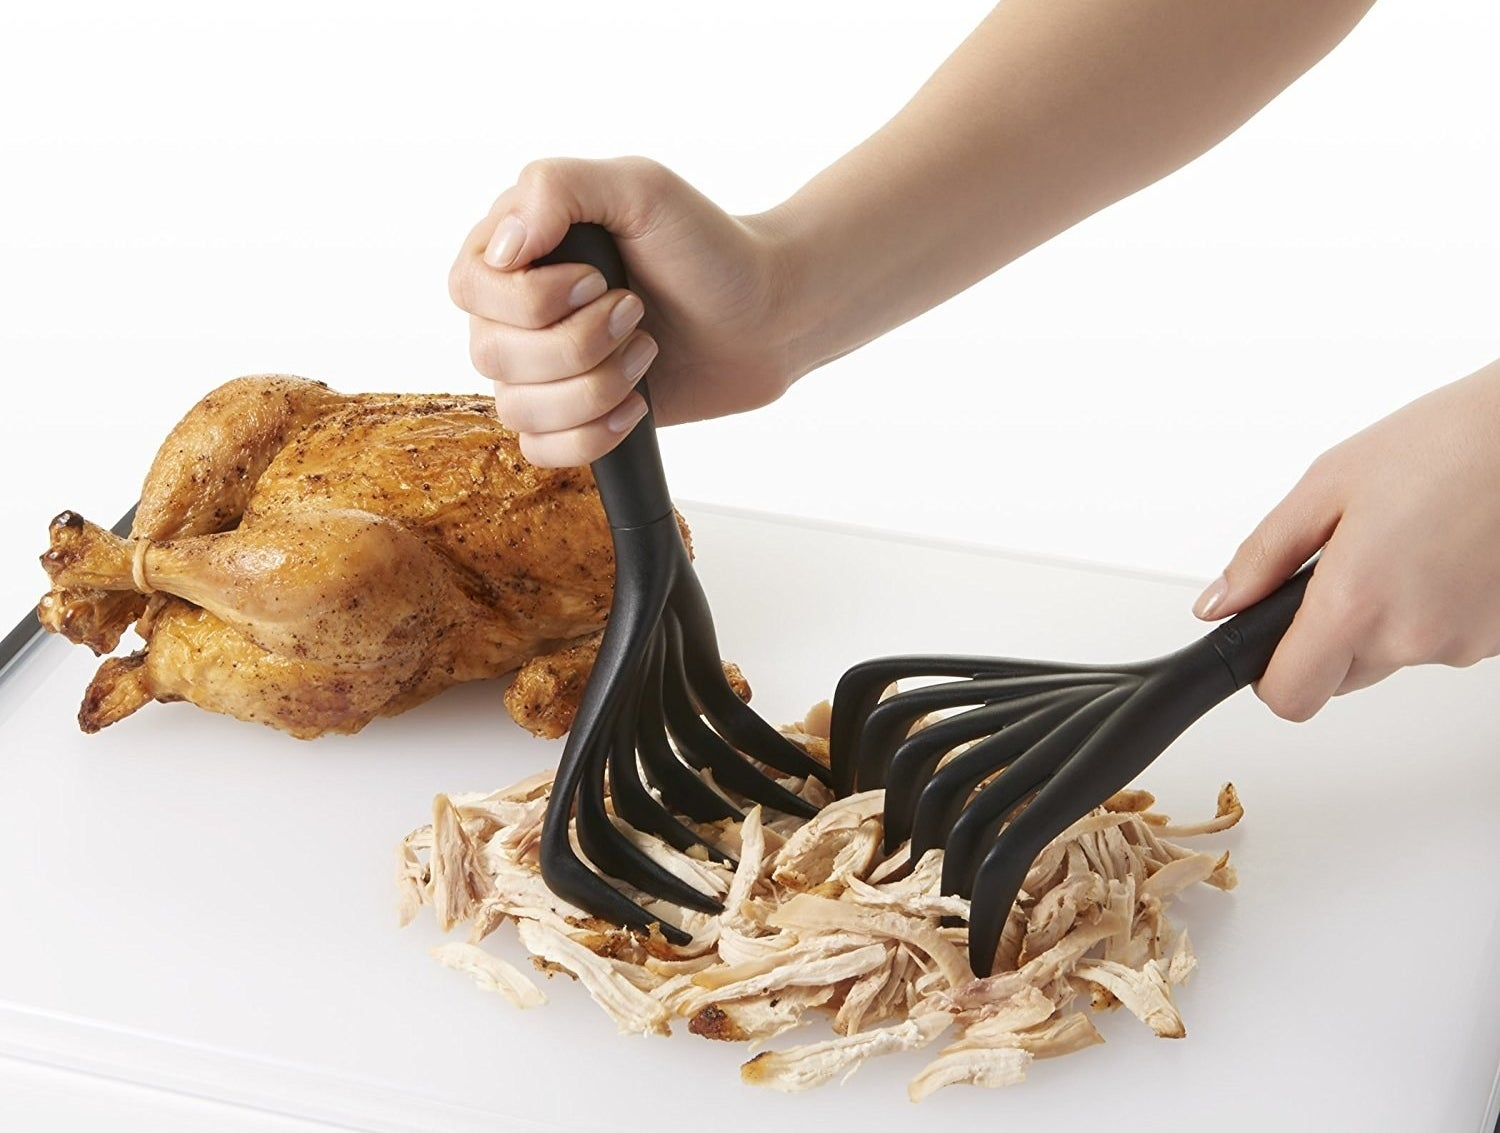 Hands shredding a rotisserie chicken with the black claws